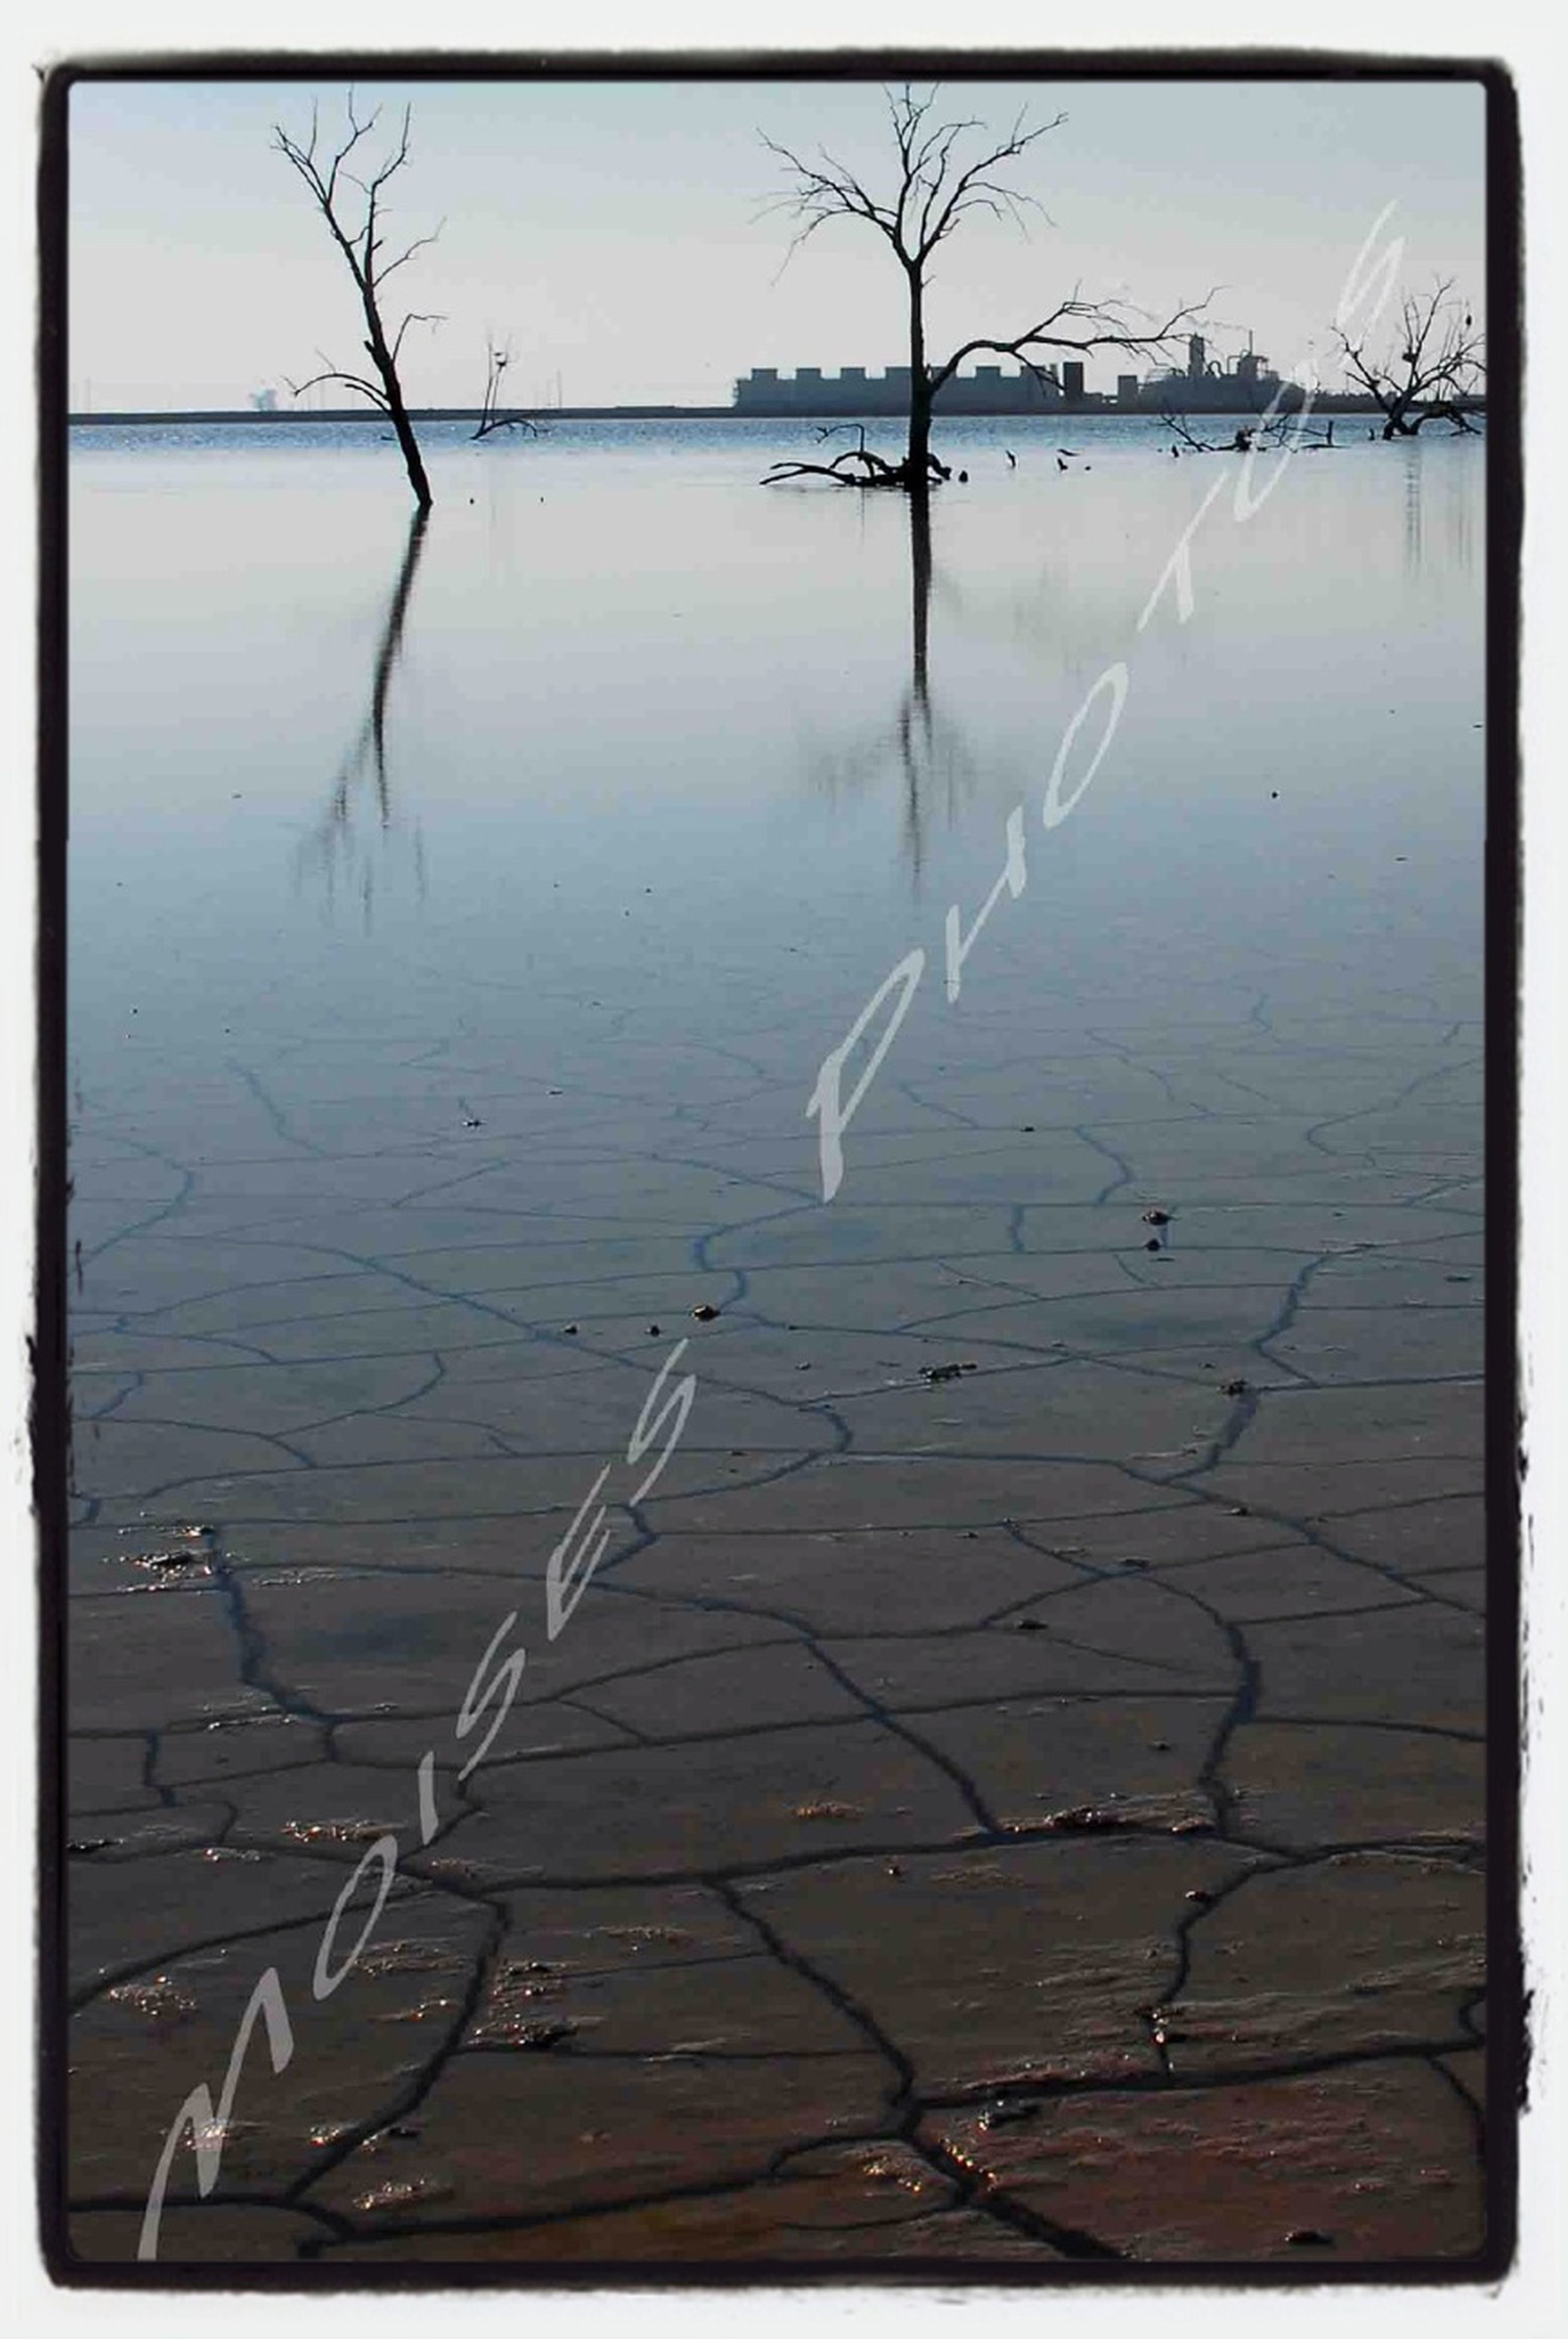 water, bare tree, lake, tranquility, tranquil scene, nature, reflection, cold temperature, winter, beauty in nature, transfer print, scenics, snow, frozen, sky, river, auto post production filter, no people, outdoors, day